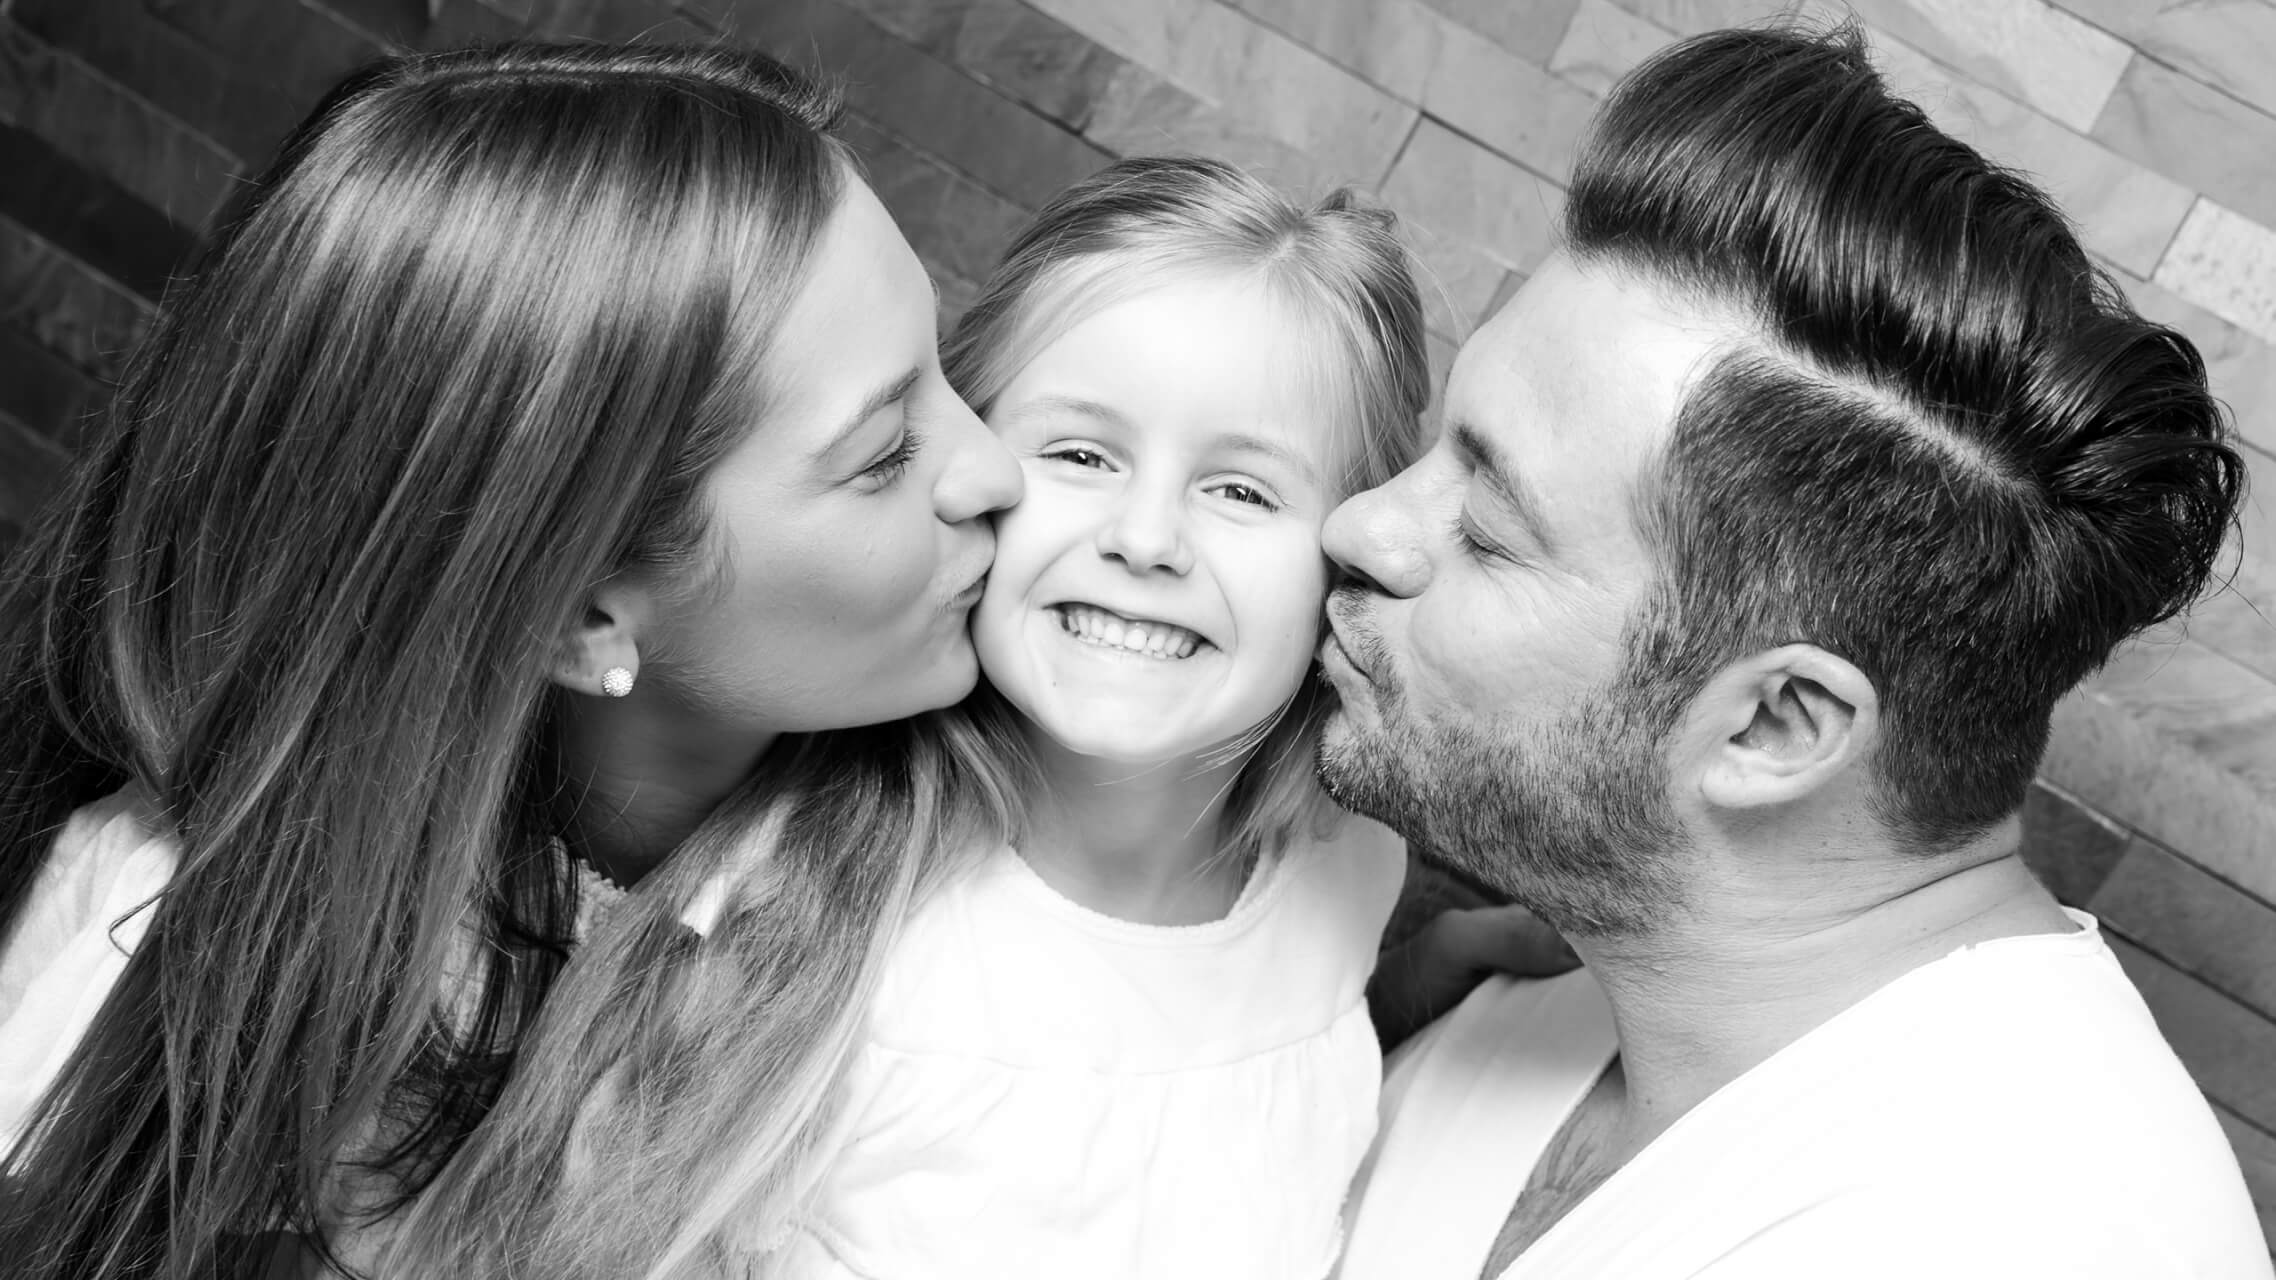 Familien Fotoshooting Picturepeople Fotostudios Picture People